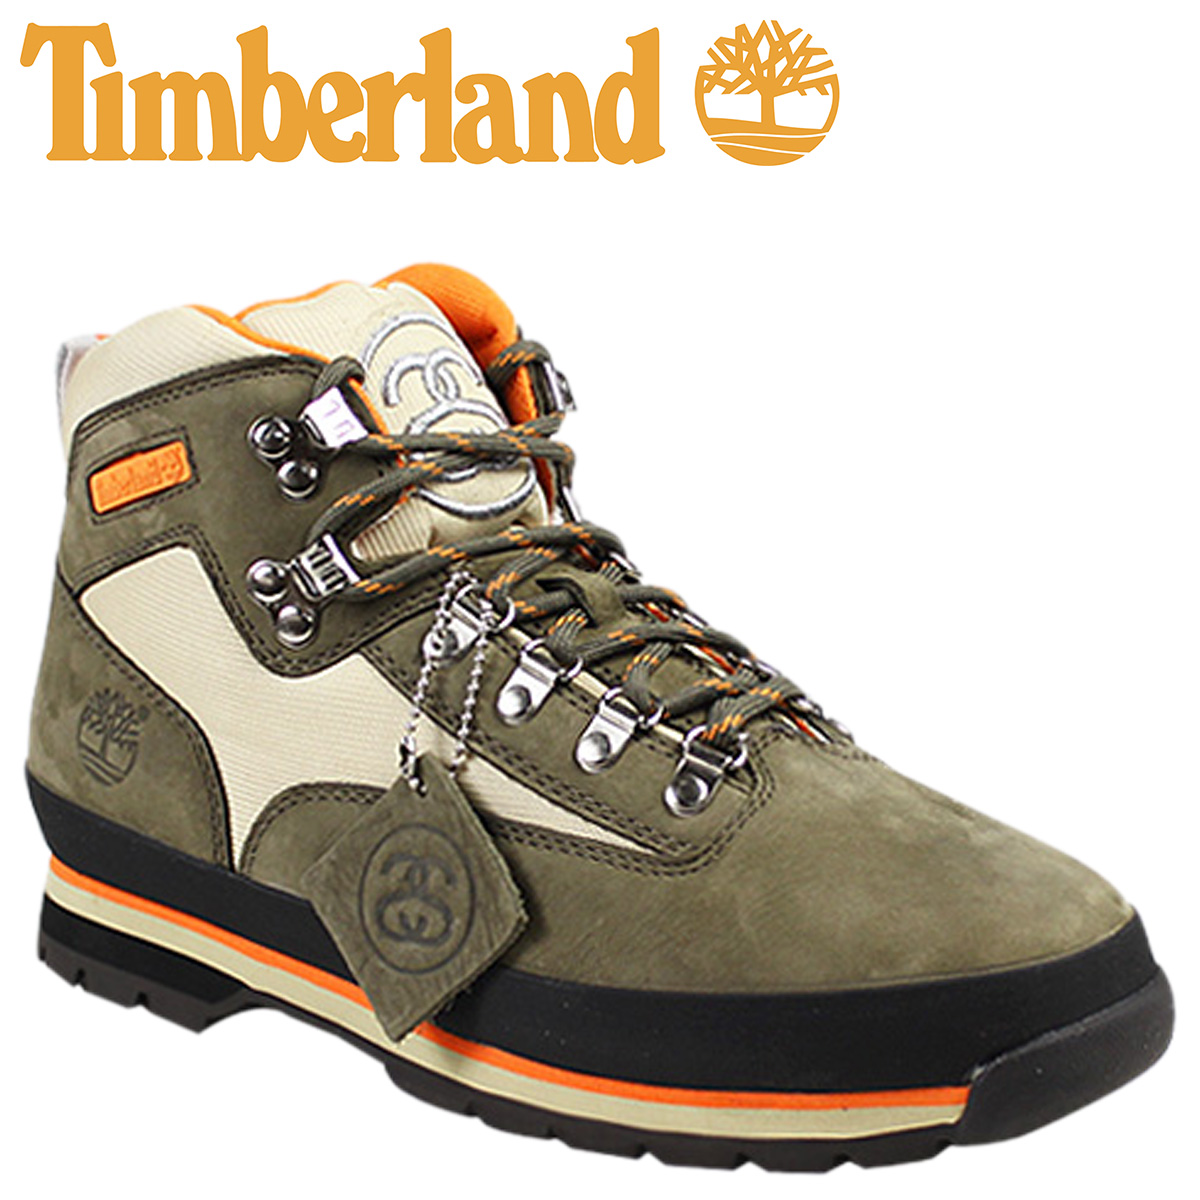 fb915314ce6 Timberland Timberland STUSSY euro hiker boots EURO HIKER BOOT nubuck  collaboration W name 6,238A brown men